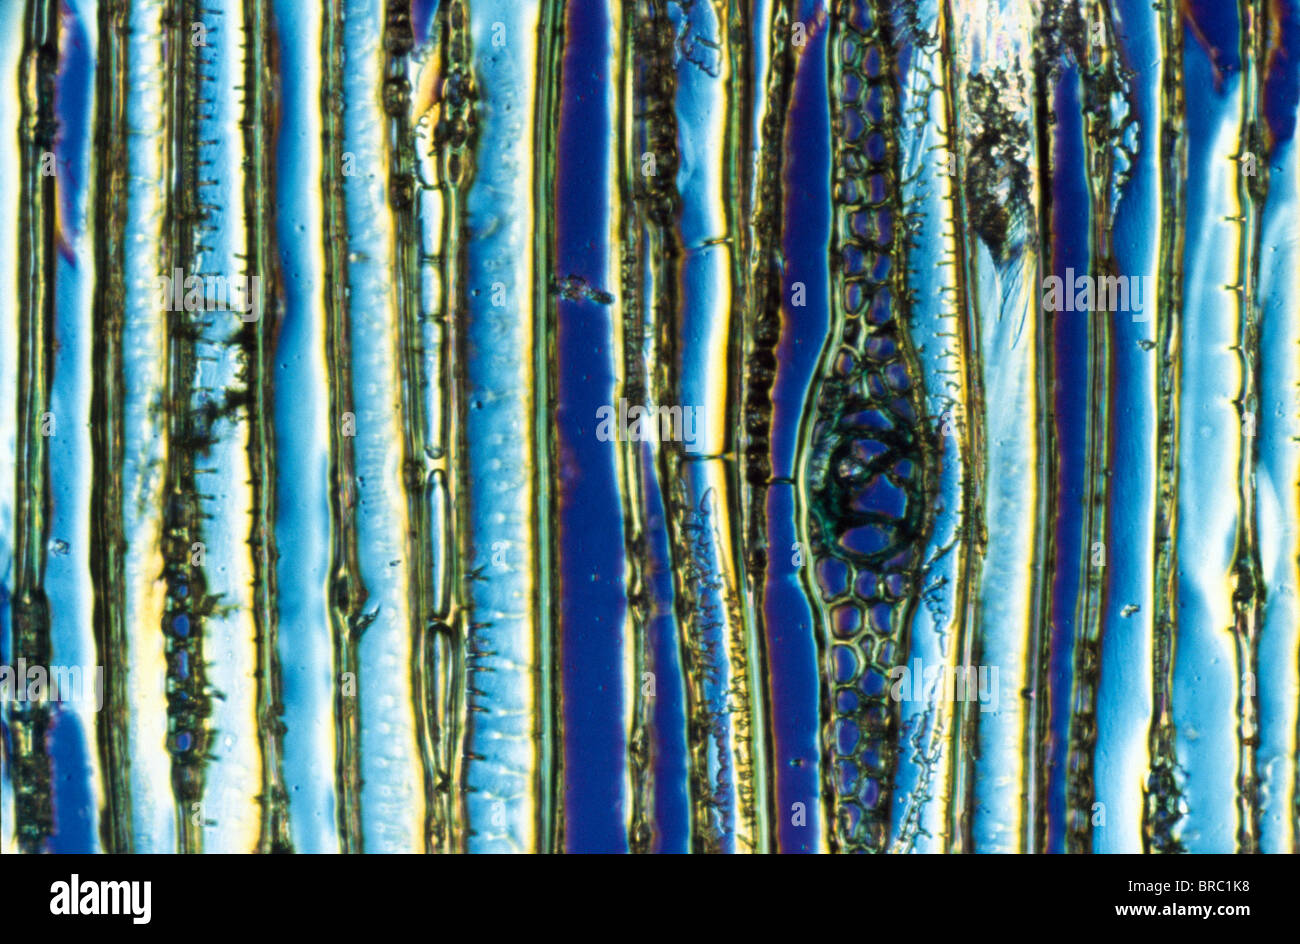 Light Micrograph (LM) of longitudinal section showing xylem elements of Scots pine wood, (Pinus sylvestris), magnification - Stock Image